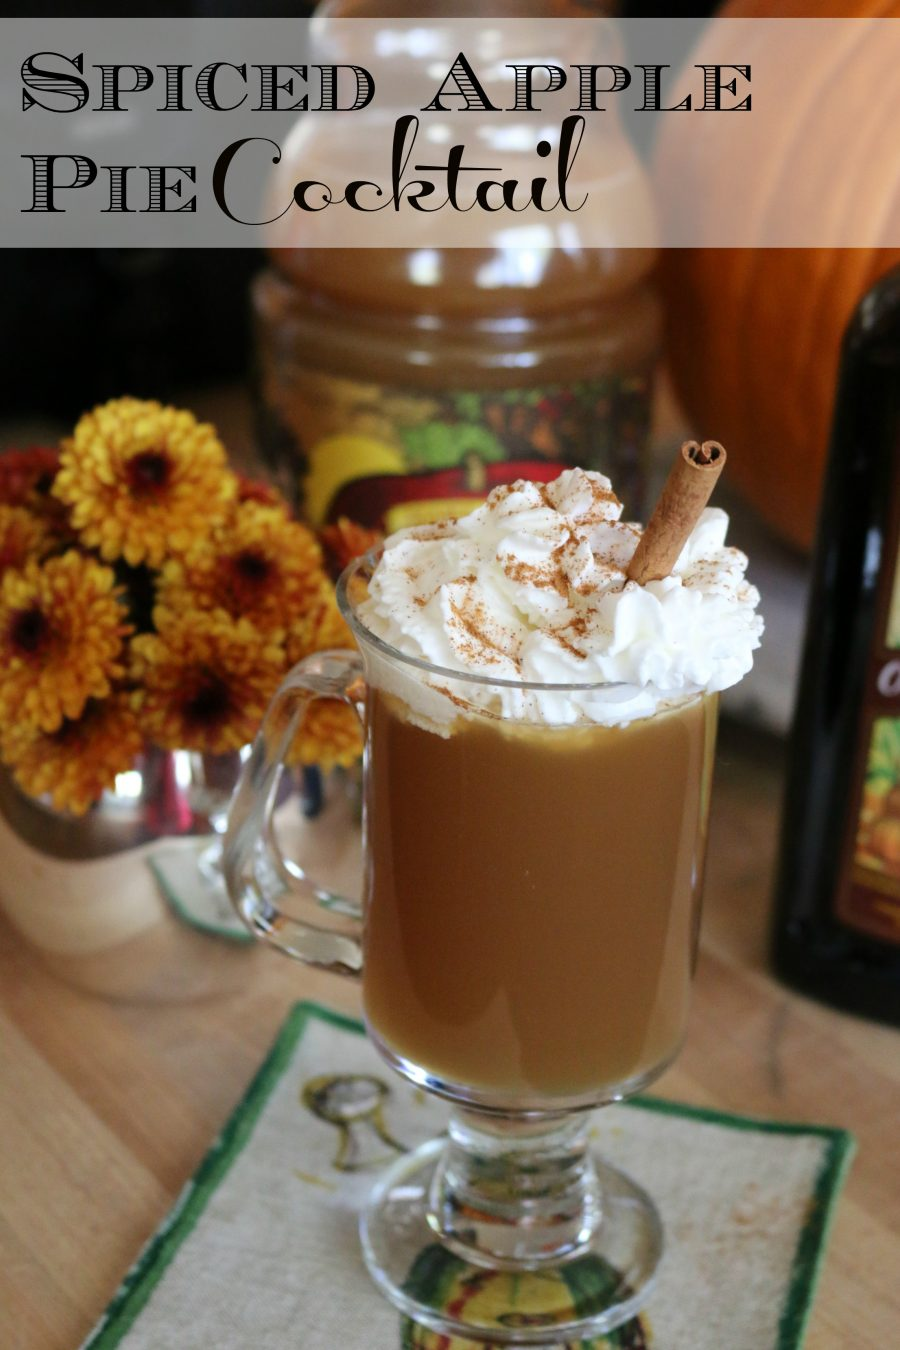 Spiced Hot Apple Pie Cocktail - perfect for a cozy evening in front of the fire.